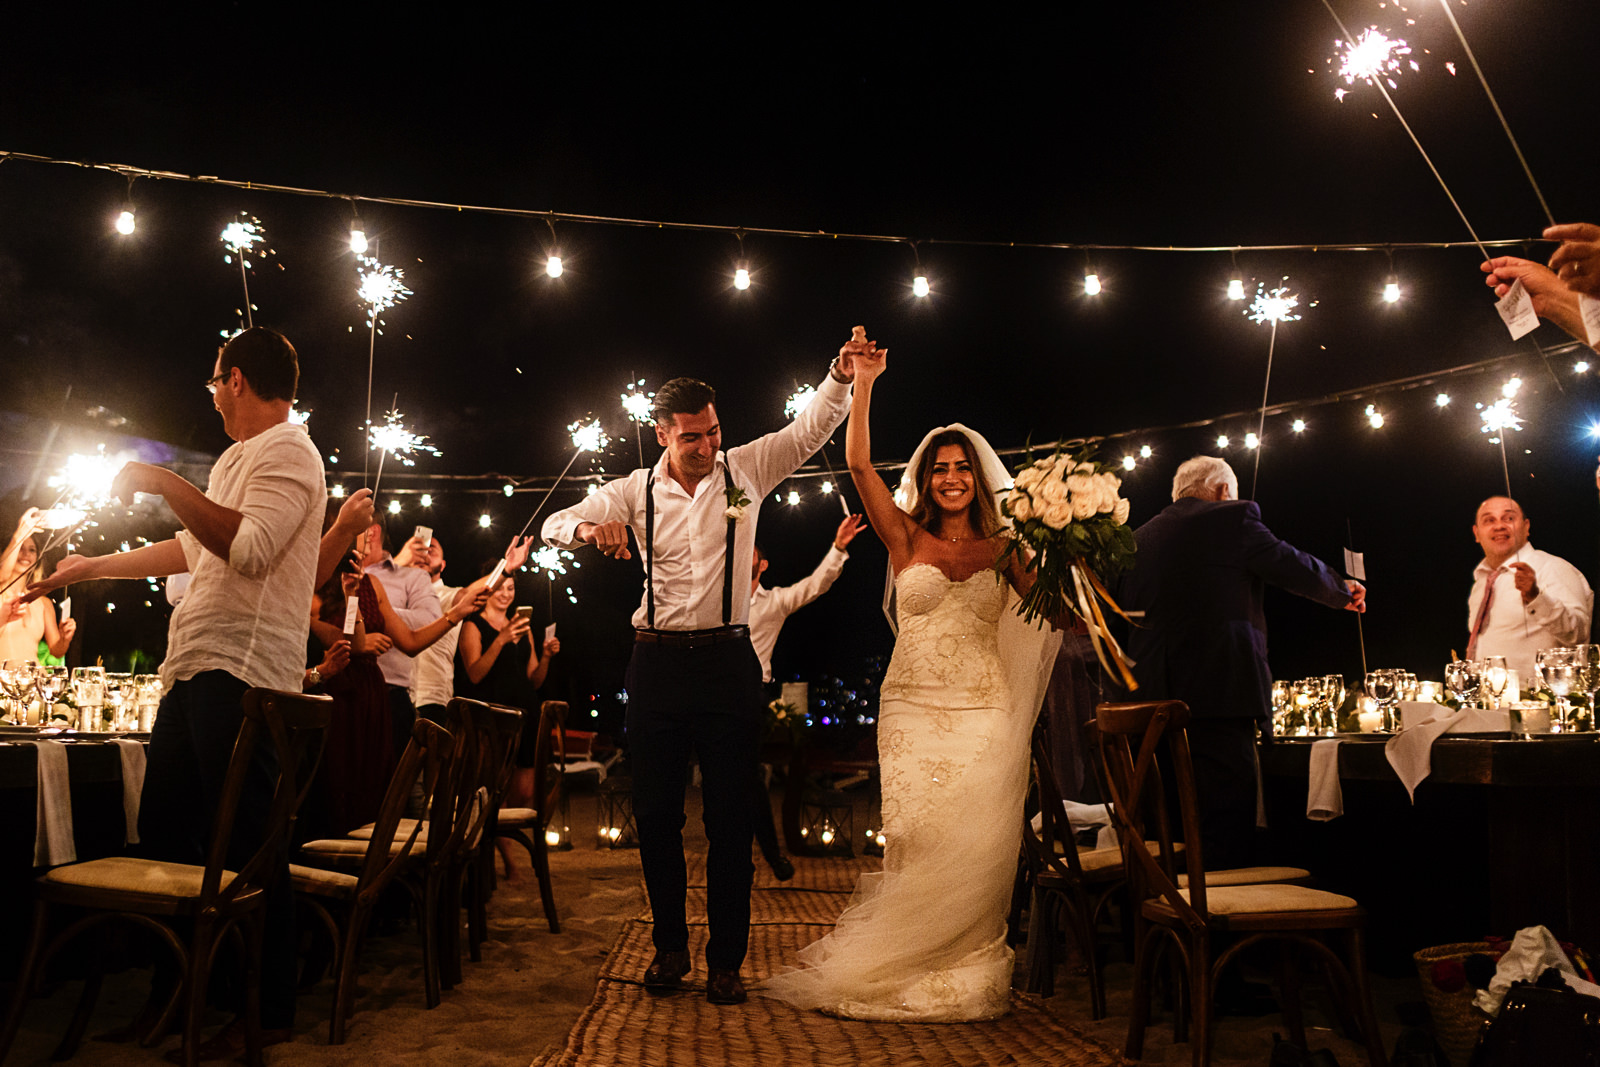 Bride and groom entrance into the reception with friends and family holding sparklers around them